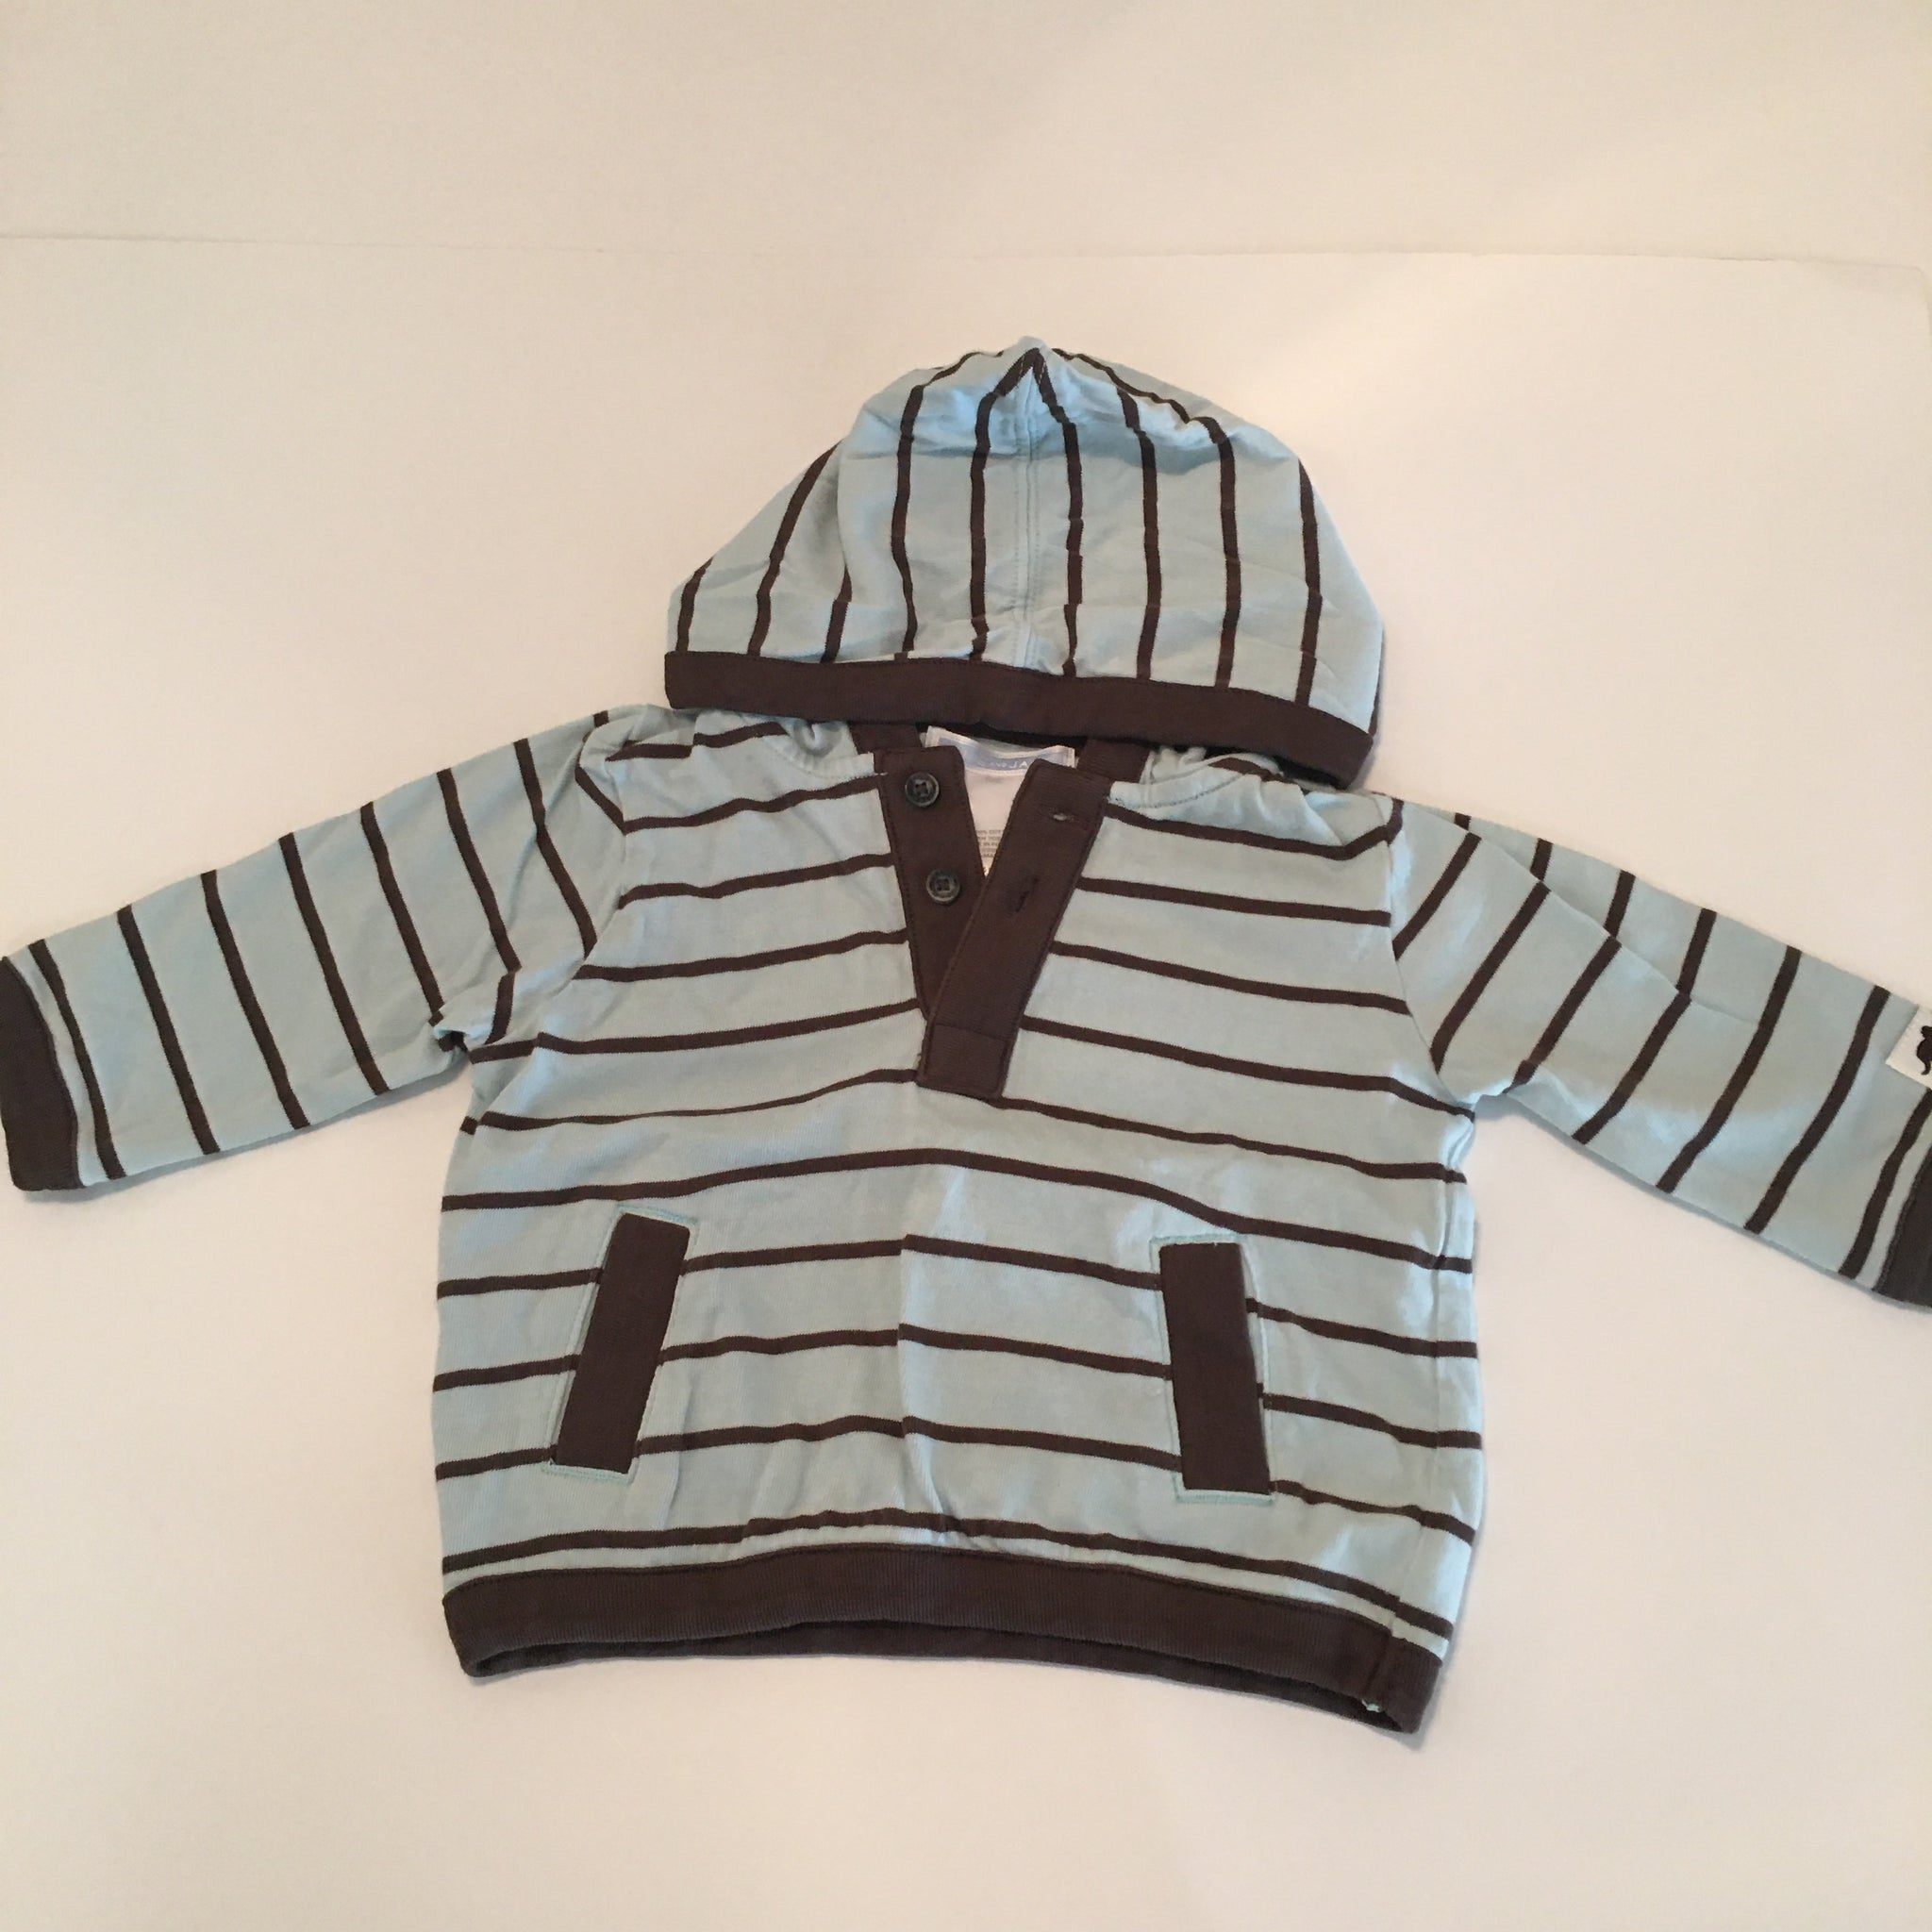 Top Janie and Jack size 3-6mo